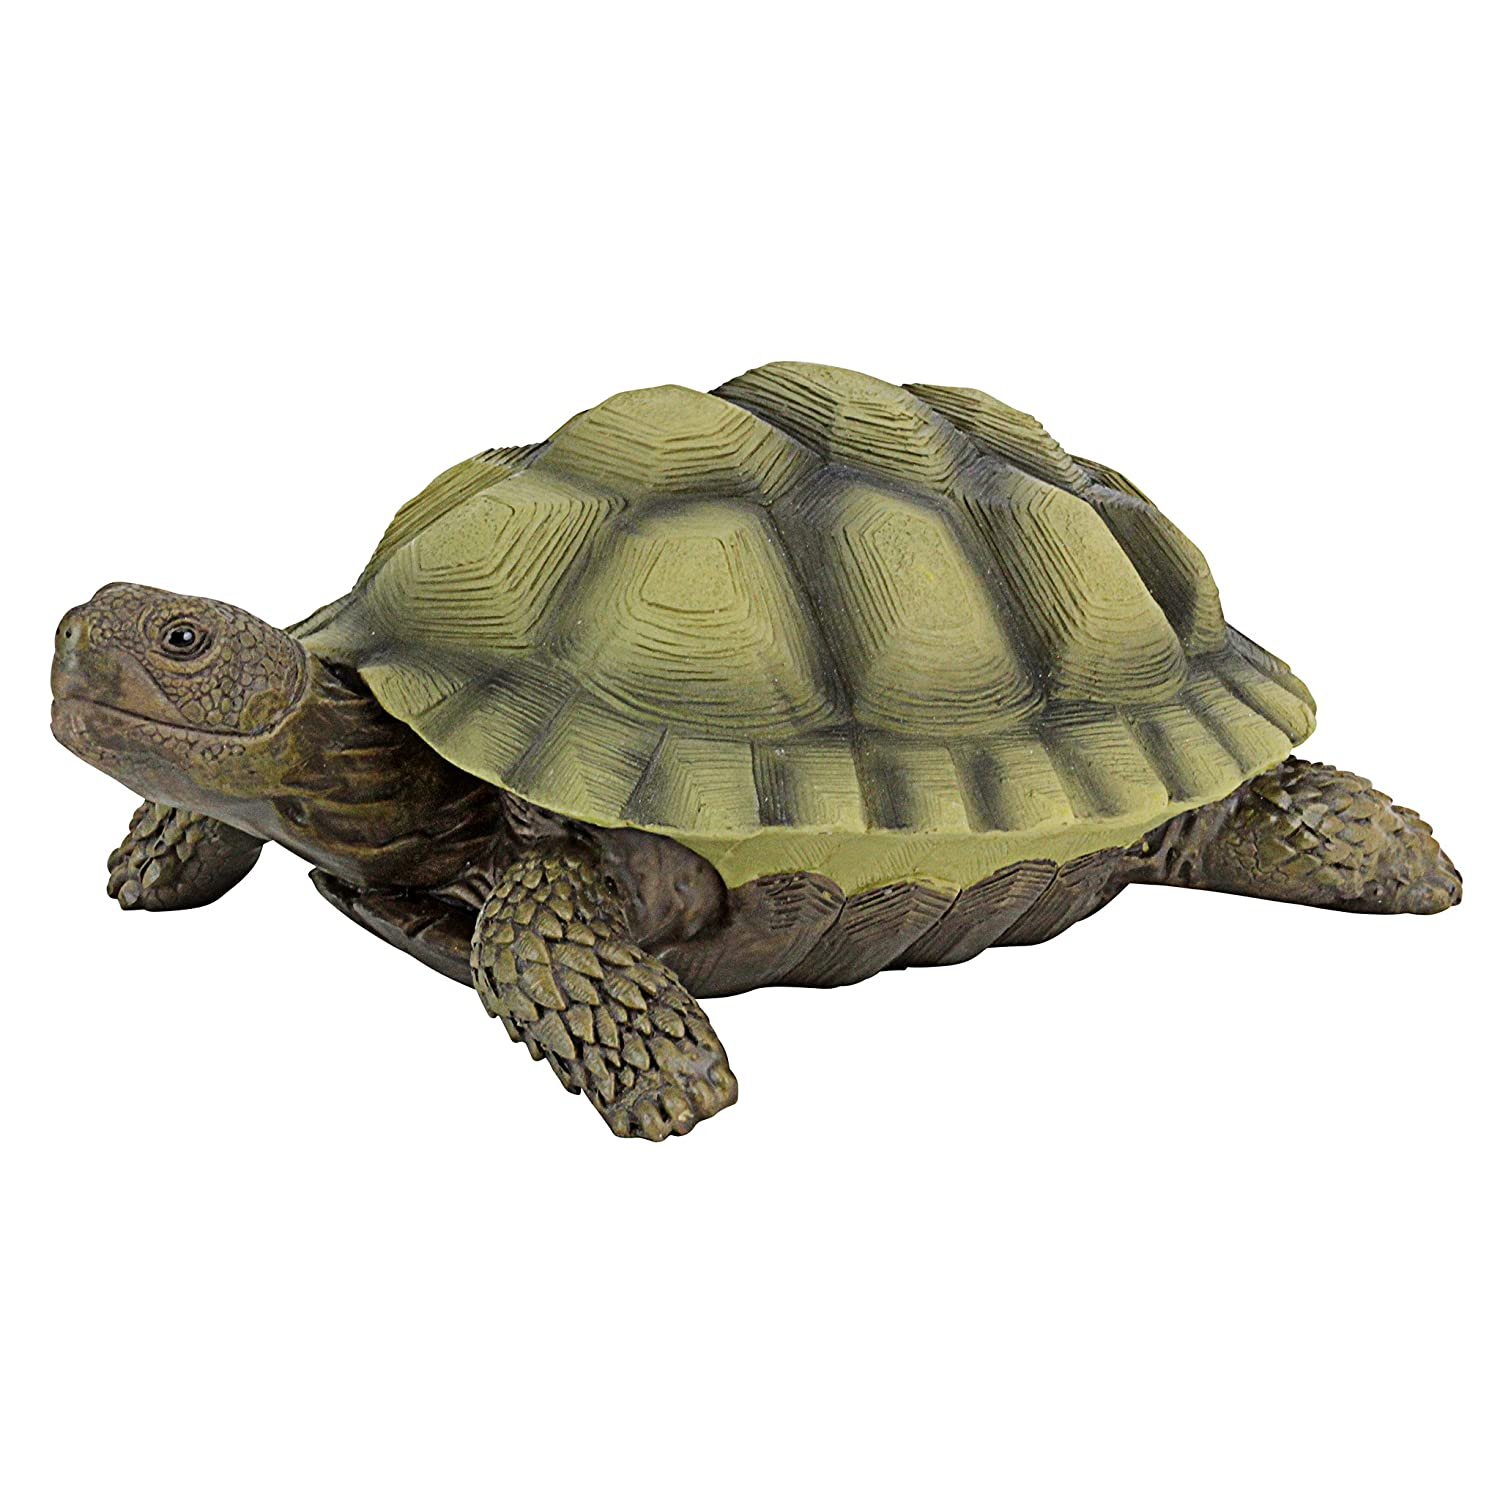 Design Toscano QM1887611 Gilbert The Box Turtle Garden Decor Animal Statue, 9 Inch Full Color